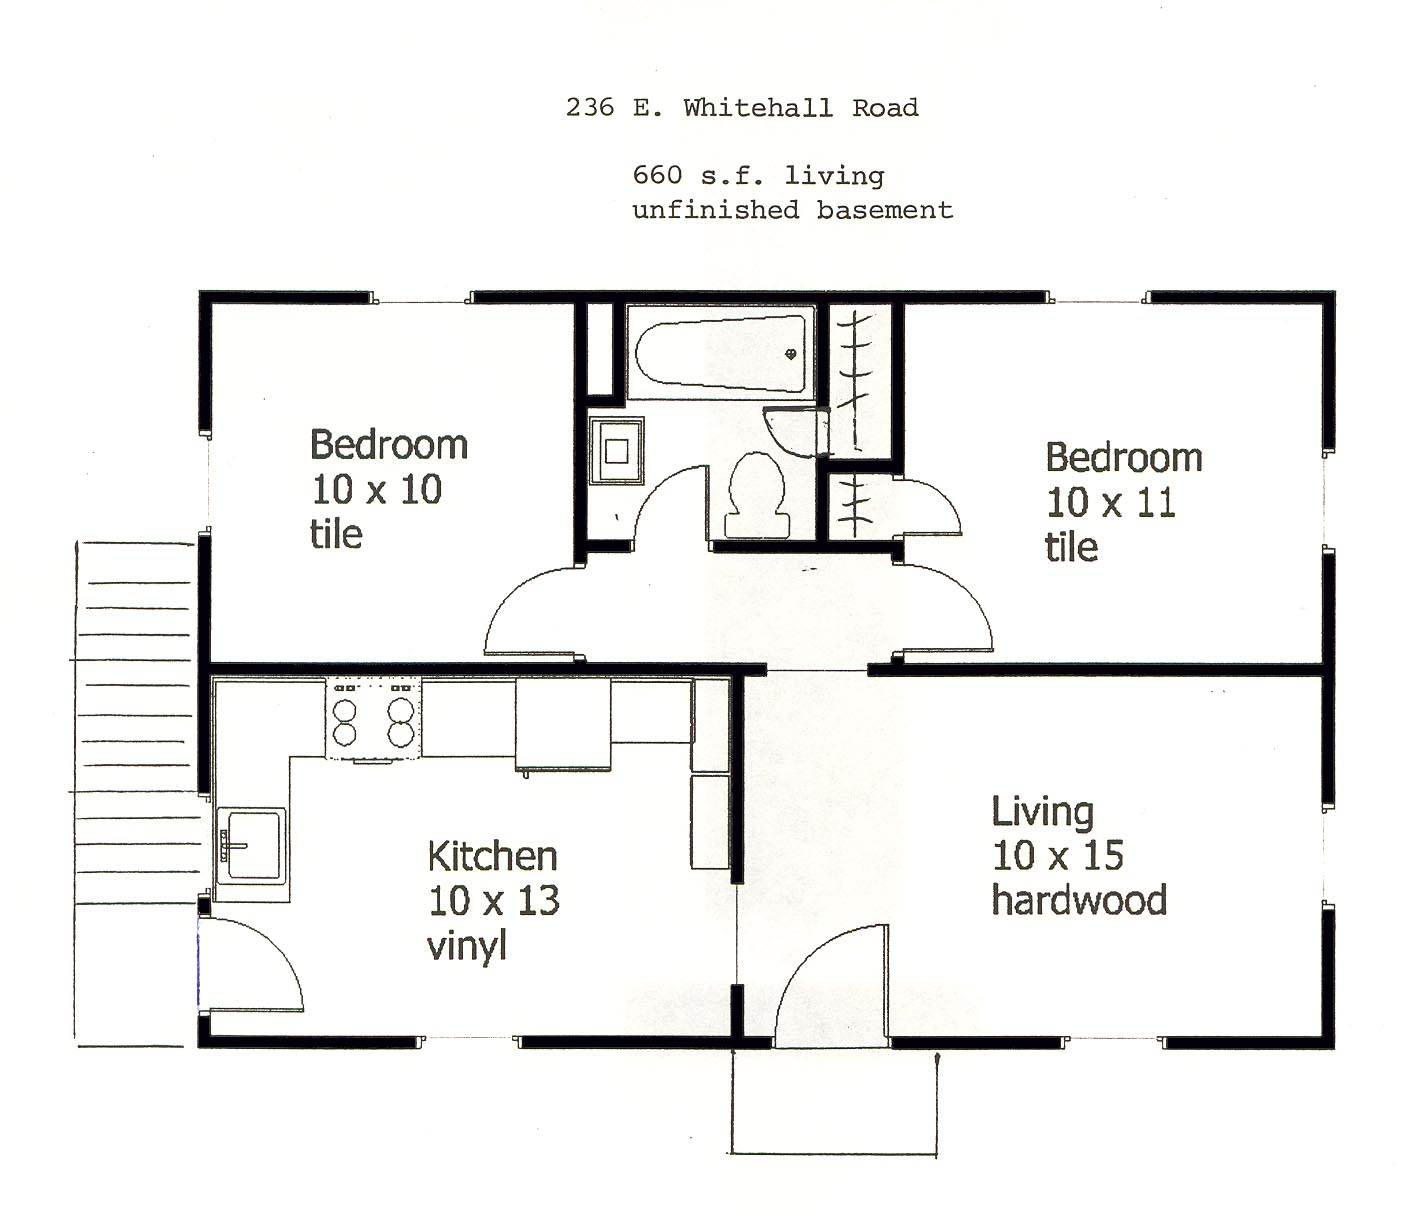 Floor plan of the small 2-bedroom house for rent at 236 East Whitehall Road in State College PA